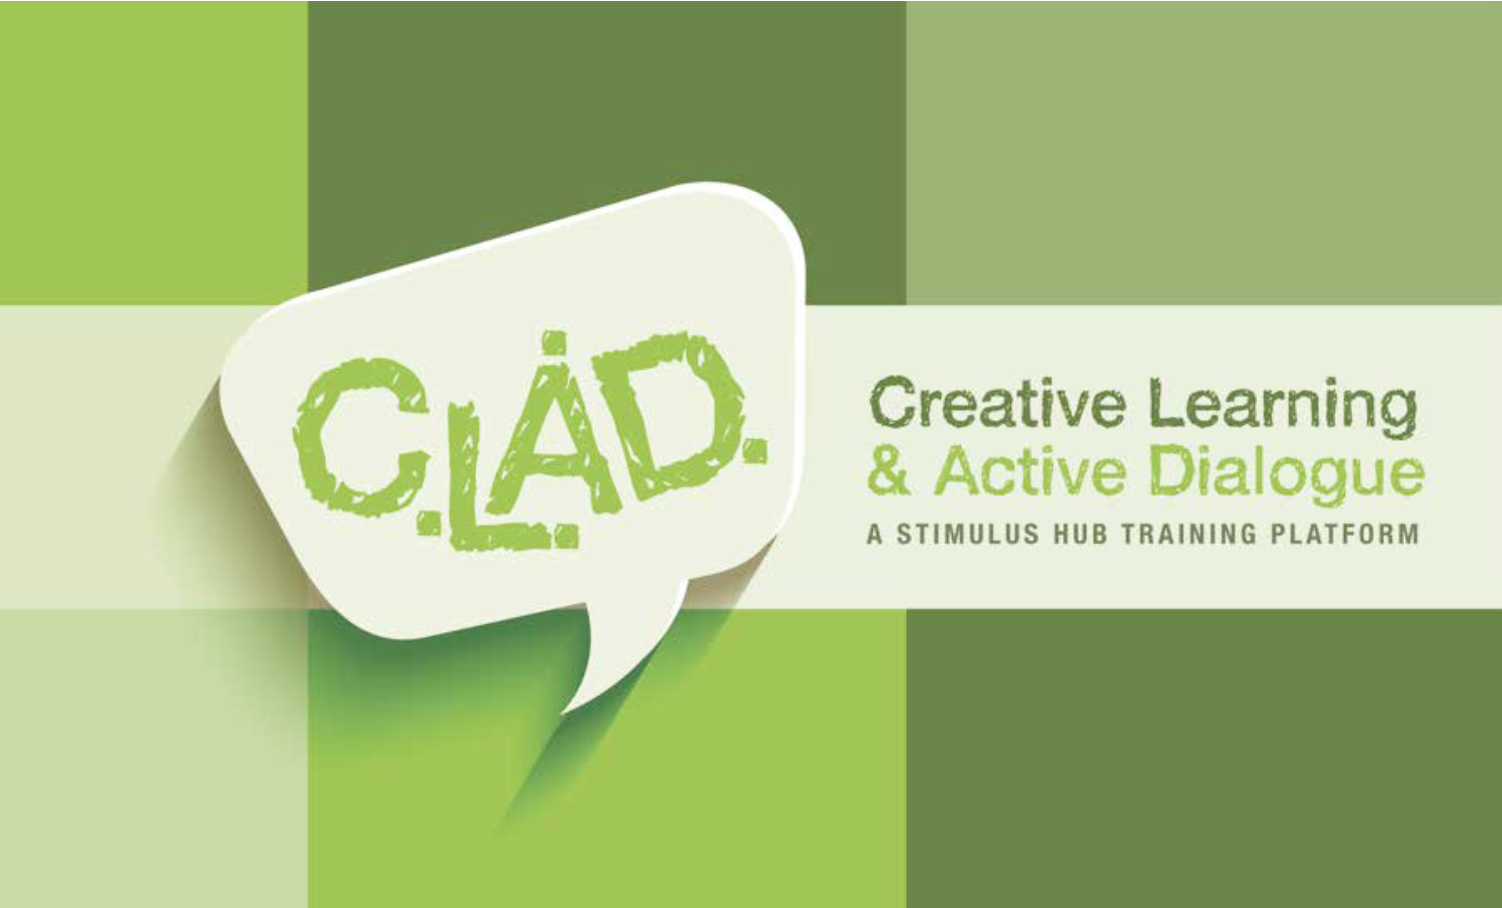 Creative Learning and active dialogue